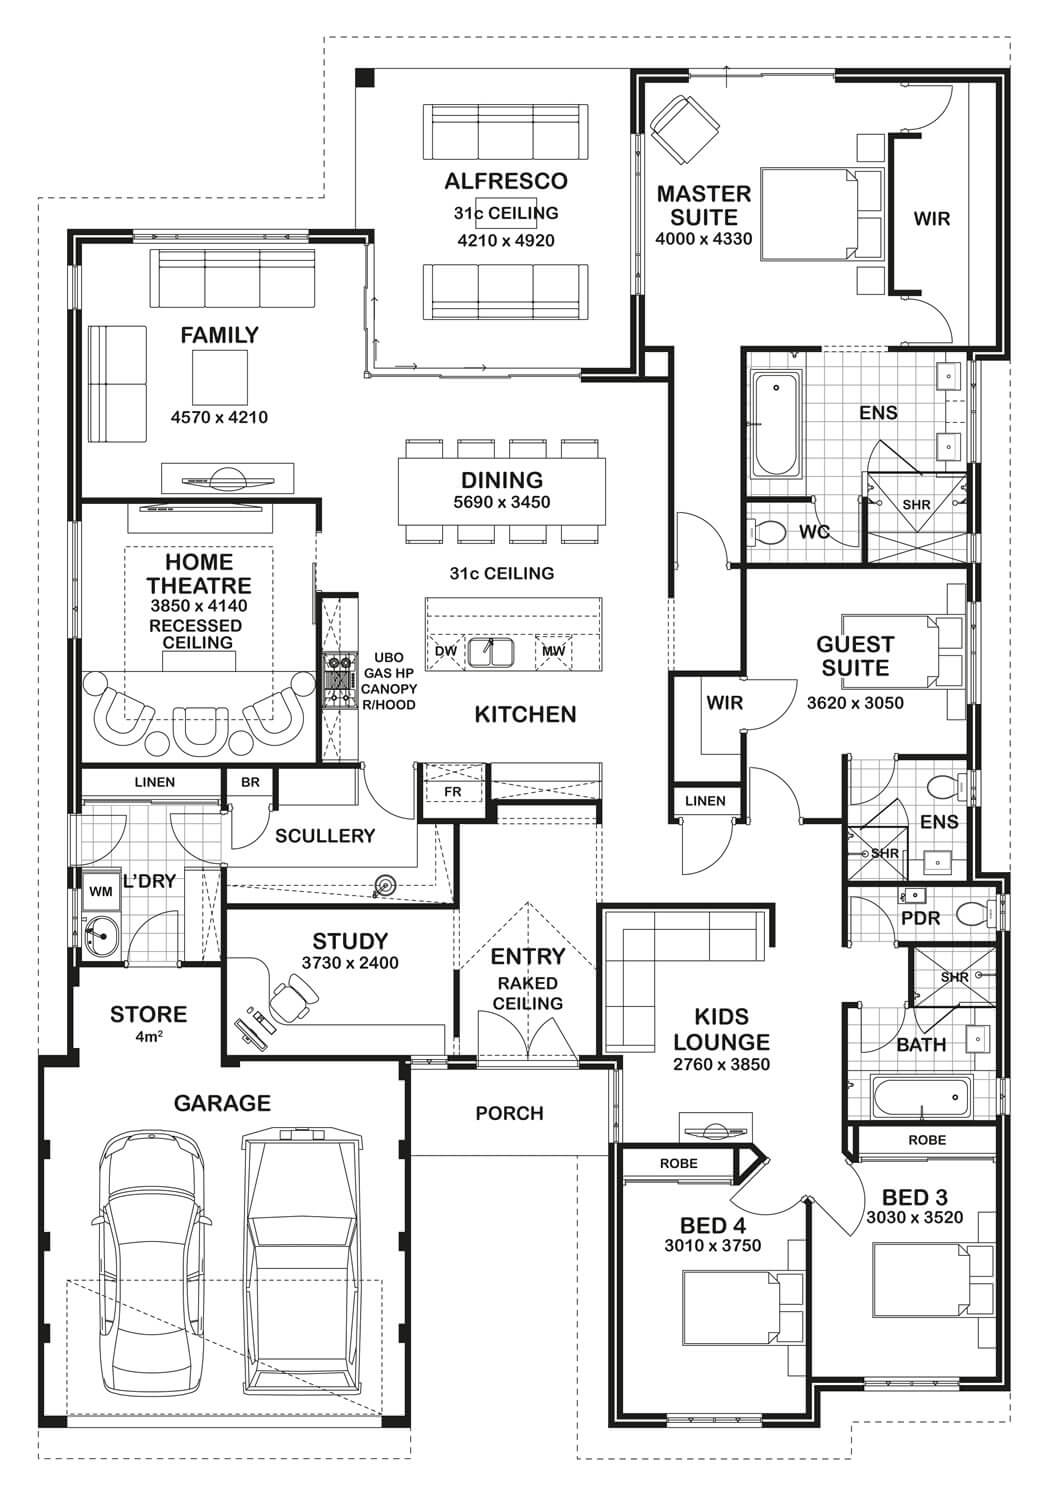 Floor plan friday storage laundry scullery - Plan floor design ...